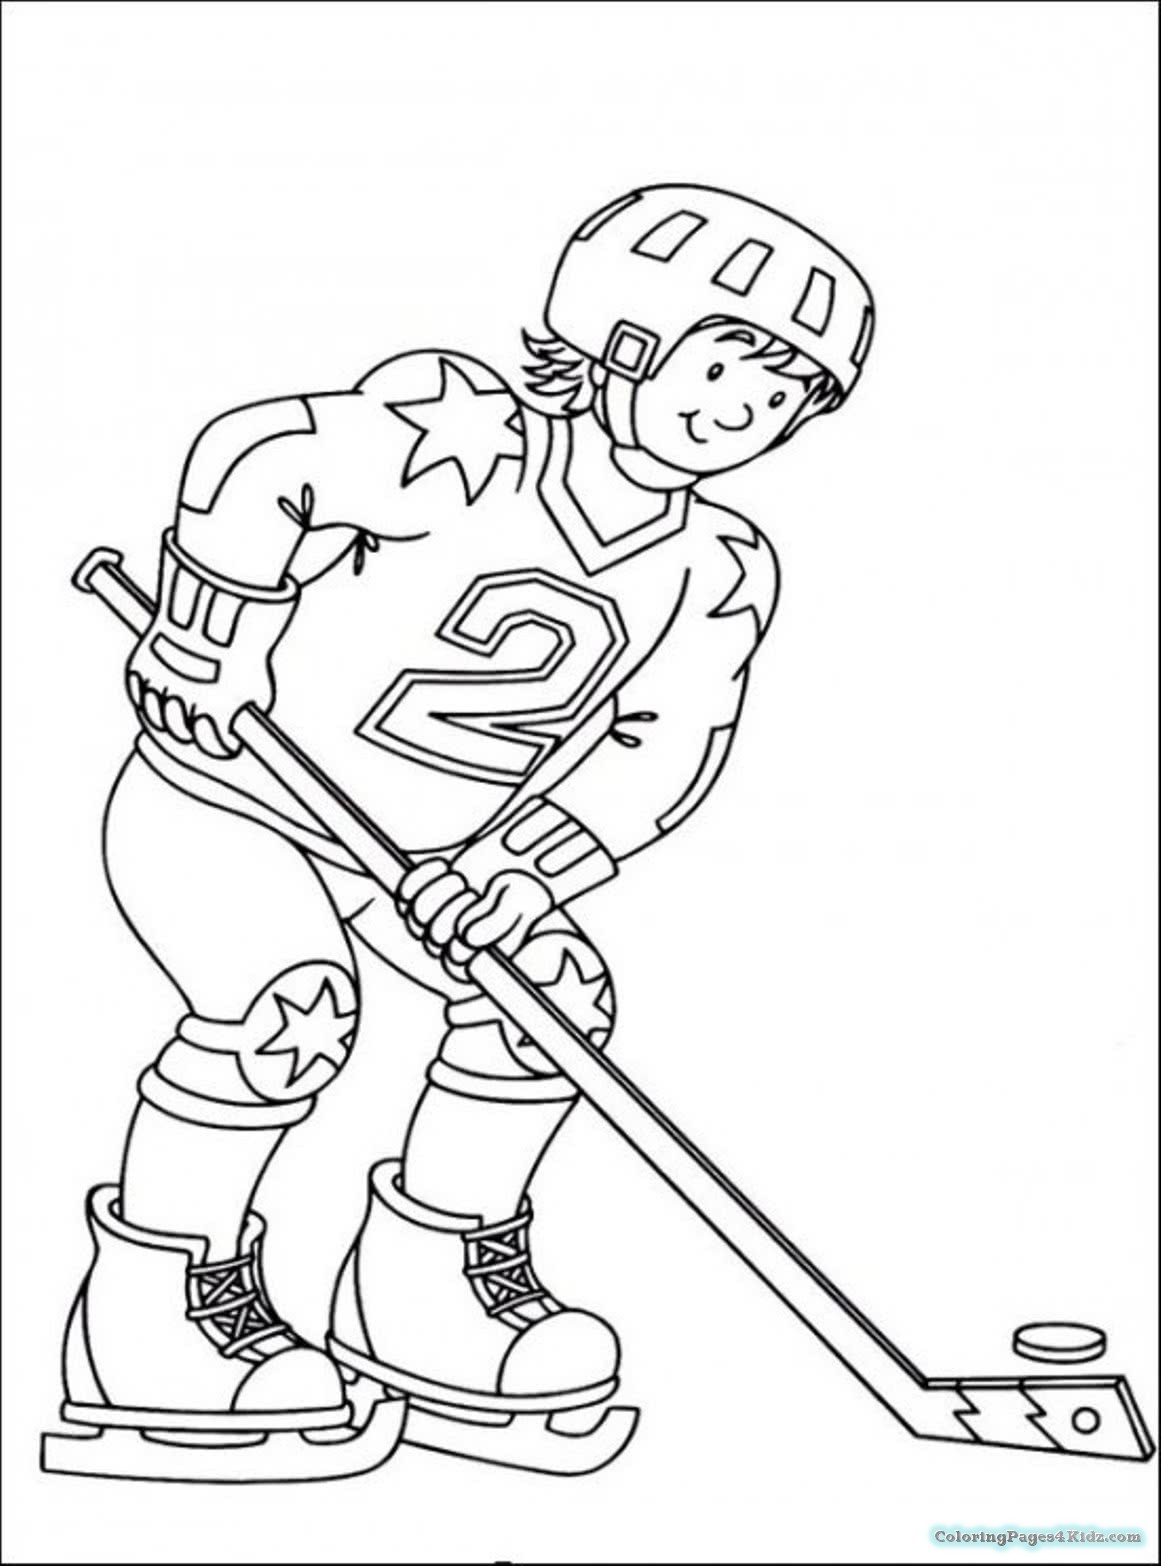 Hockey Drawing Pictures At Getdrawings